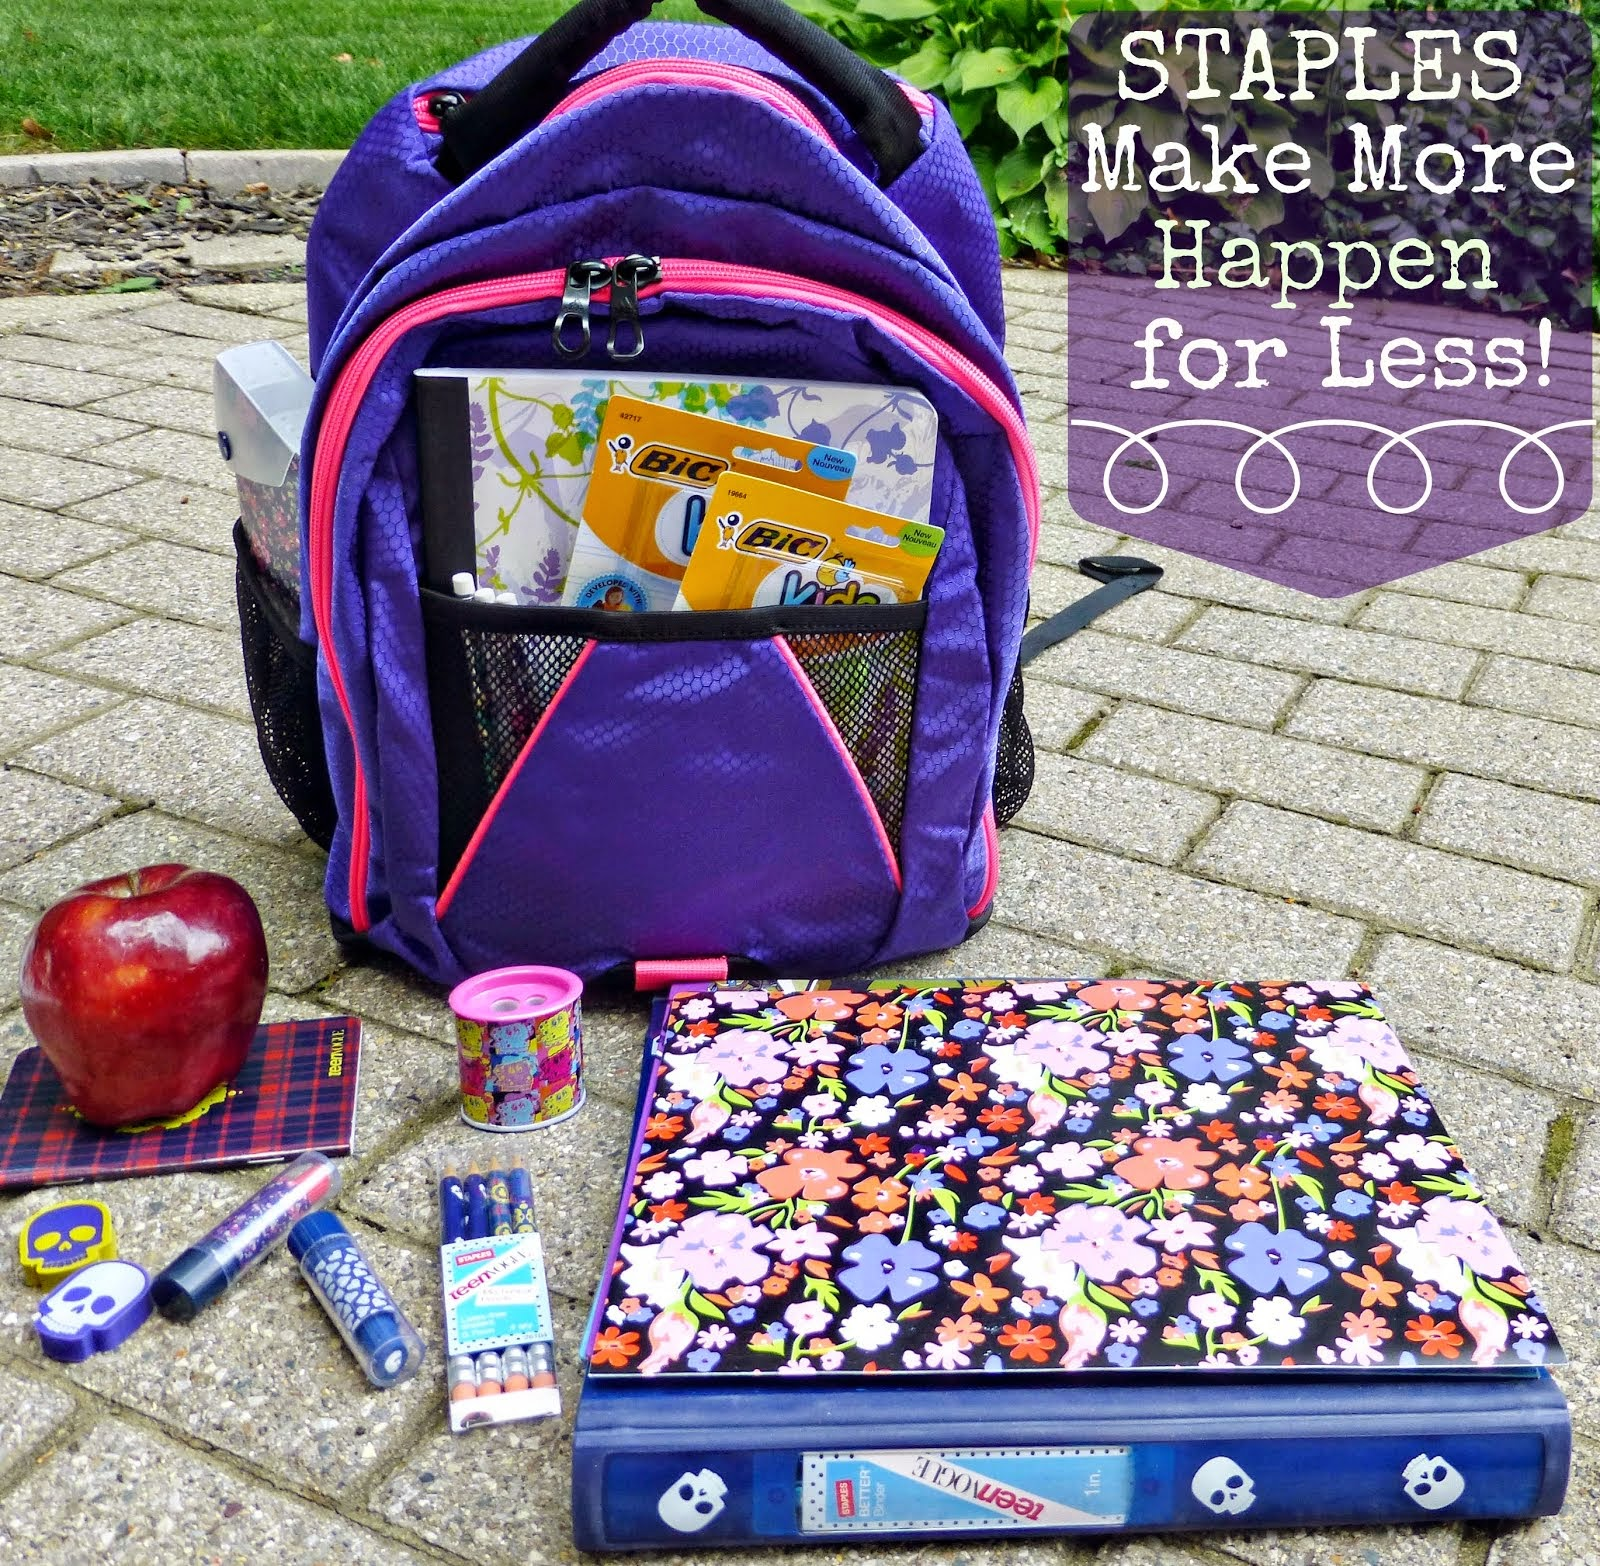 Enter to win $25 Staples GC